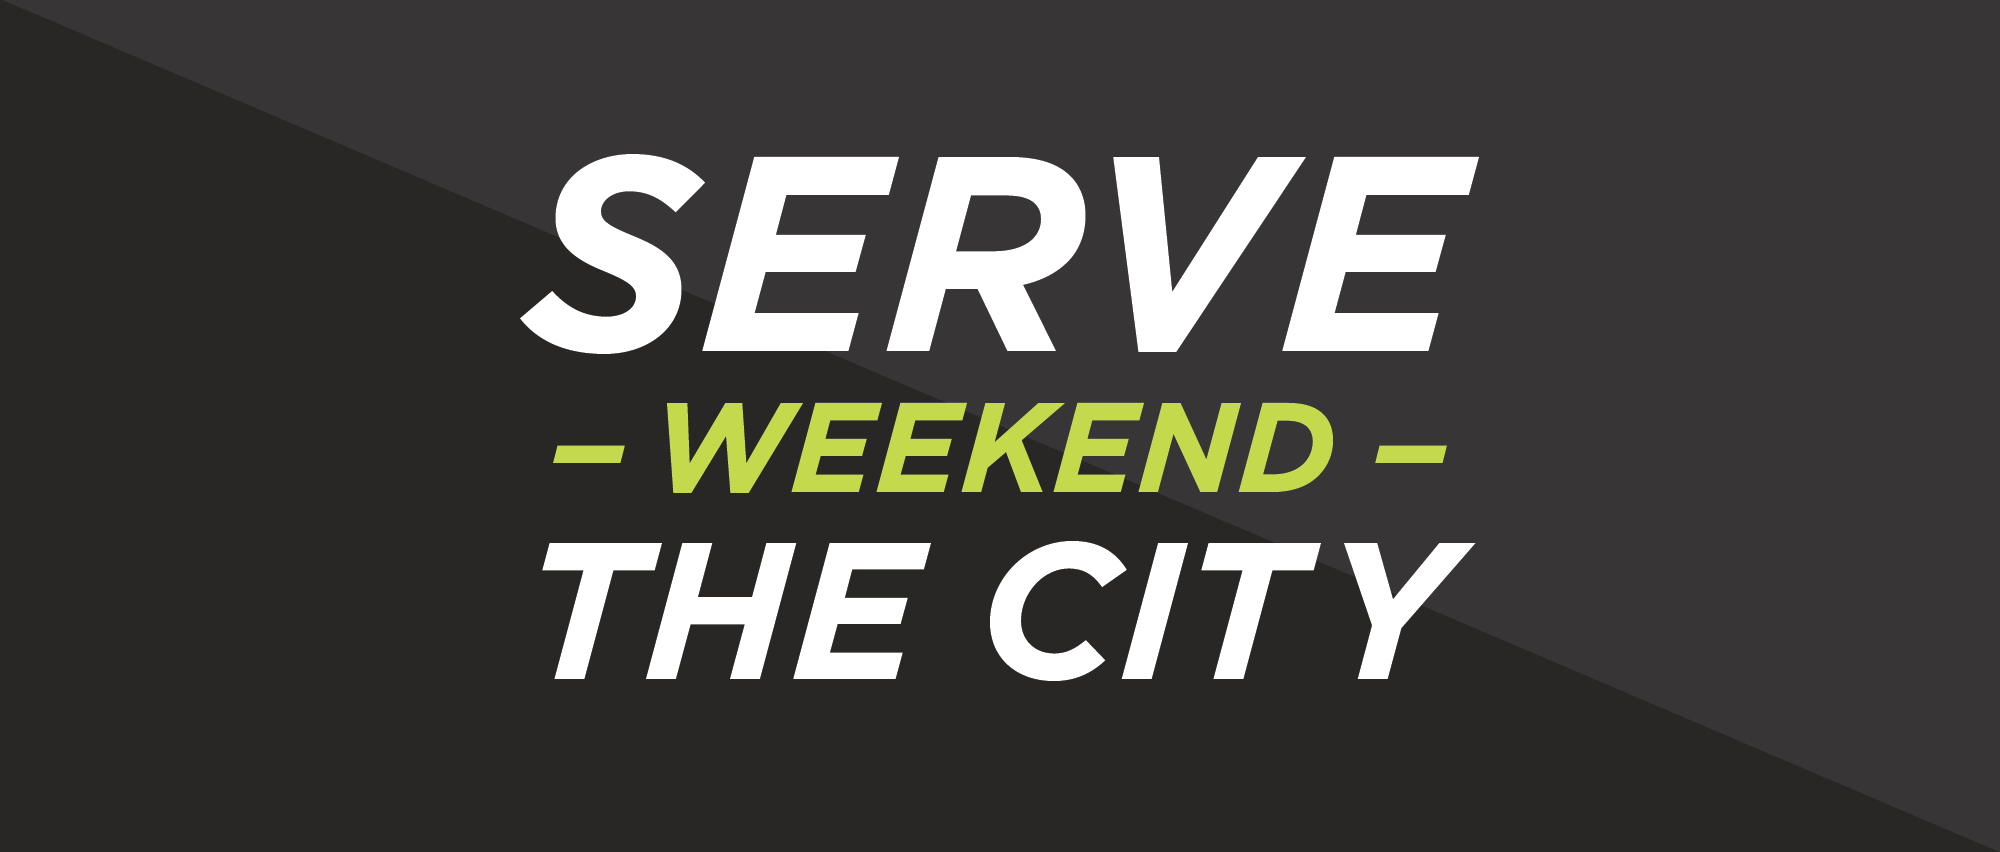 STC Weekend WEB-01.png